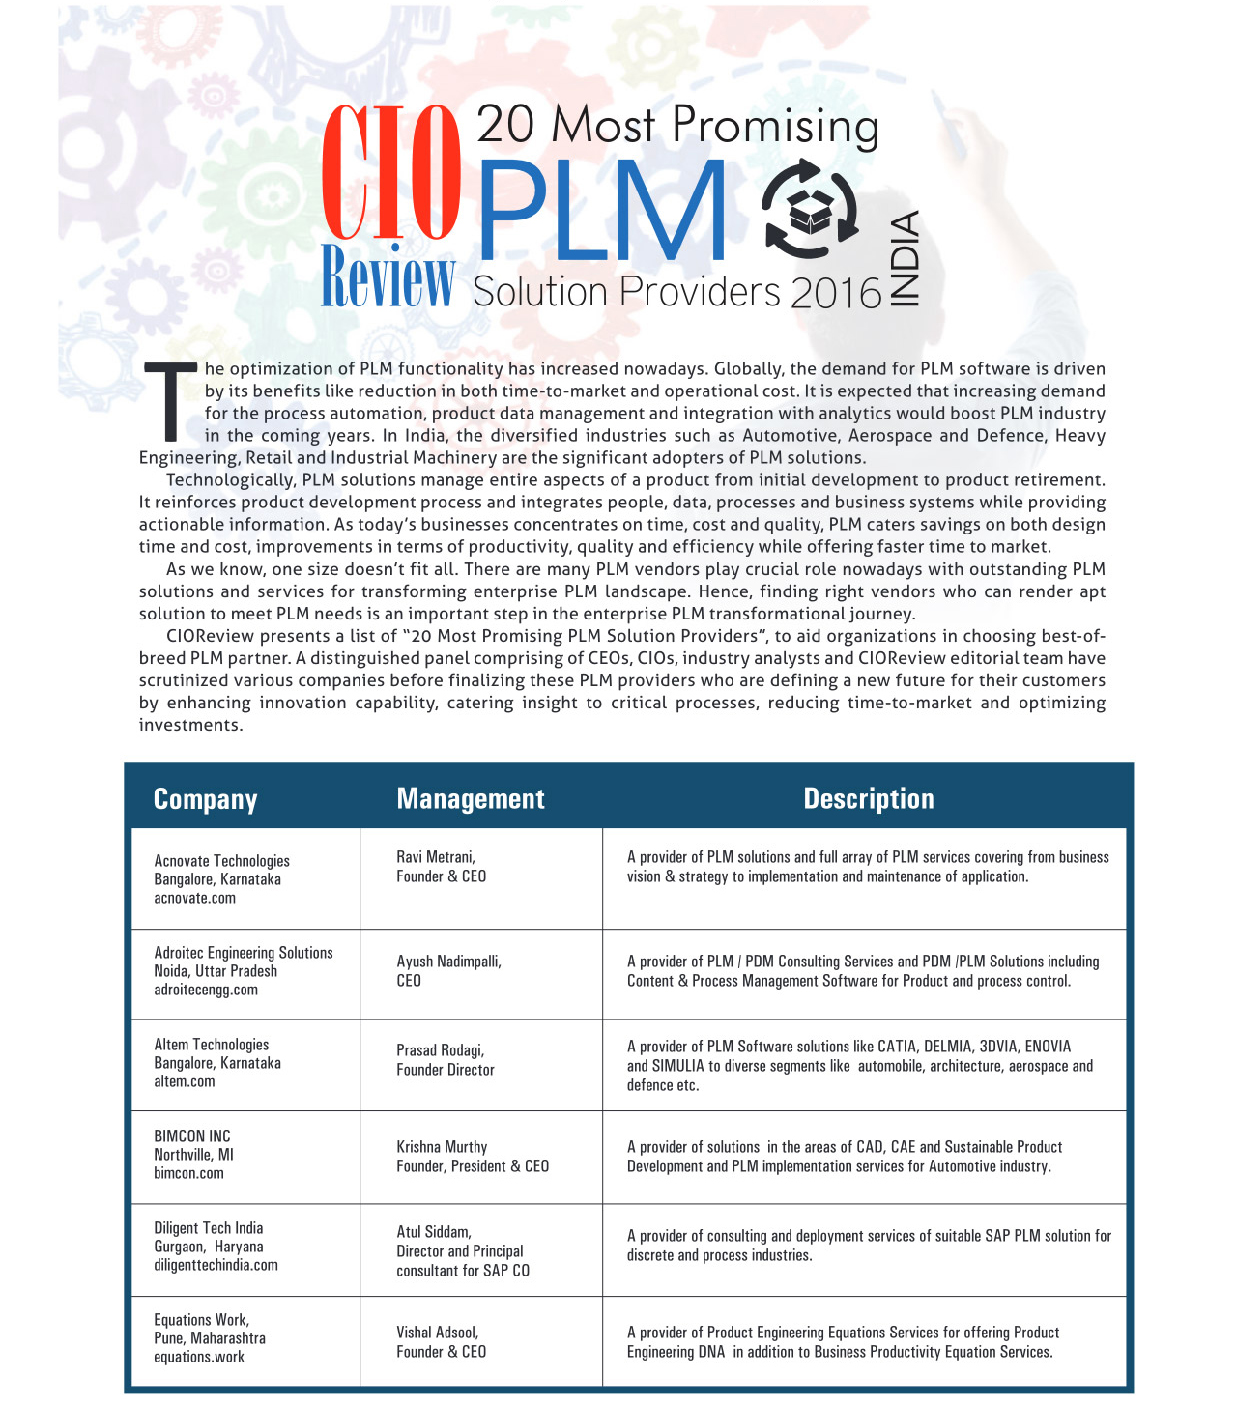 Cio review india magazine plm special september 2016 listing 2 01